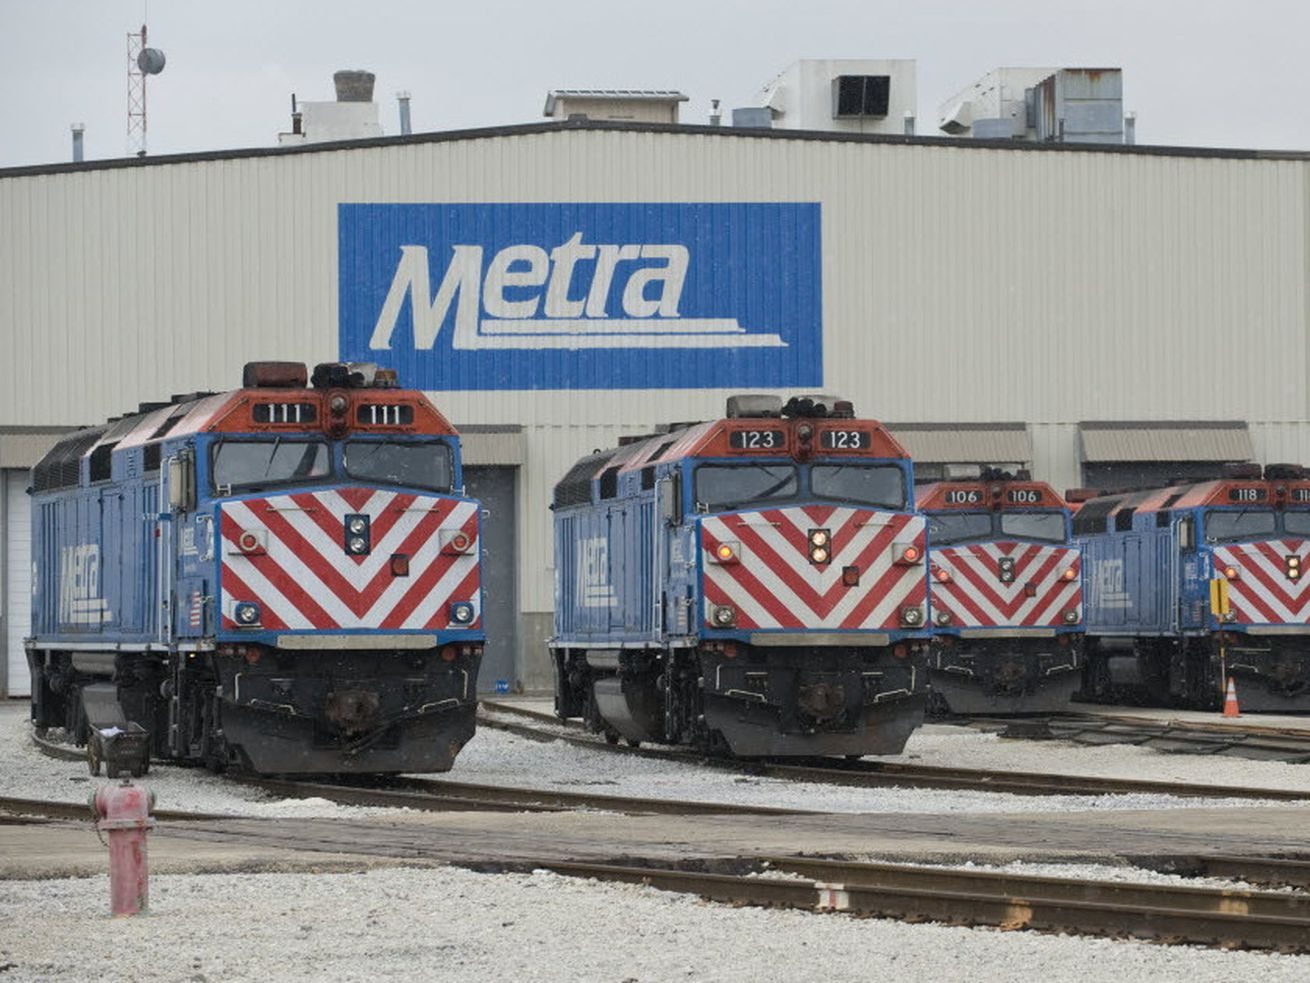 Metra trains outside a train barn.